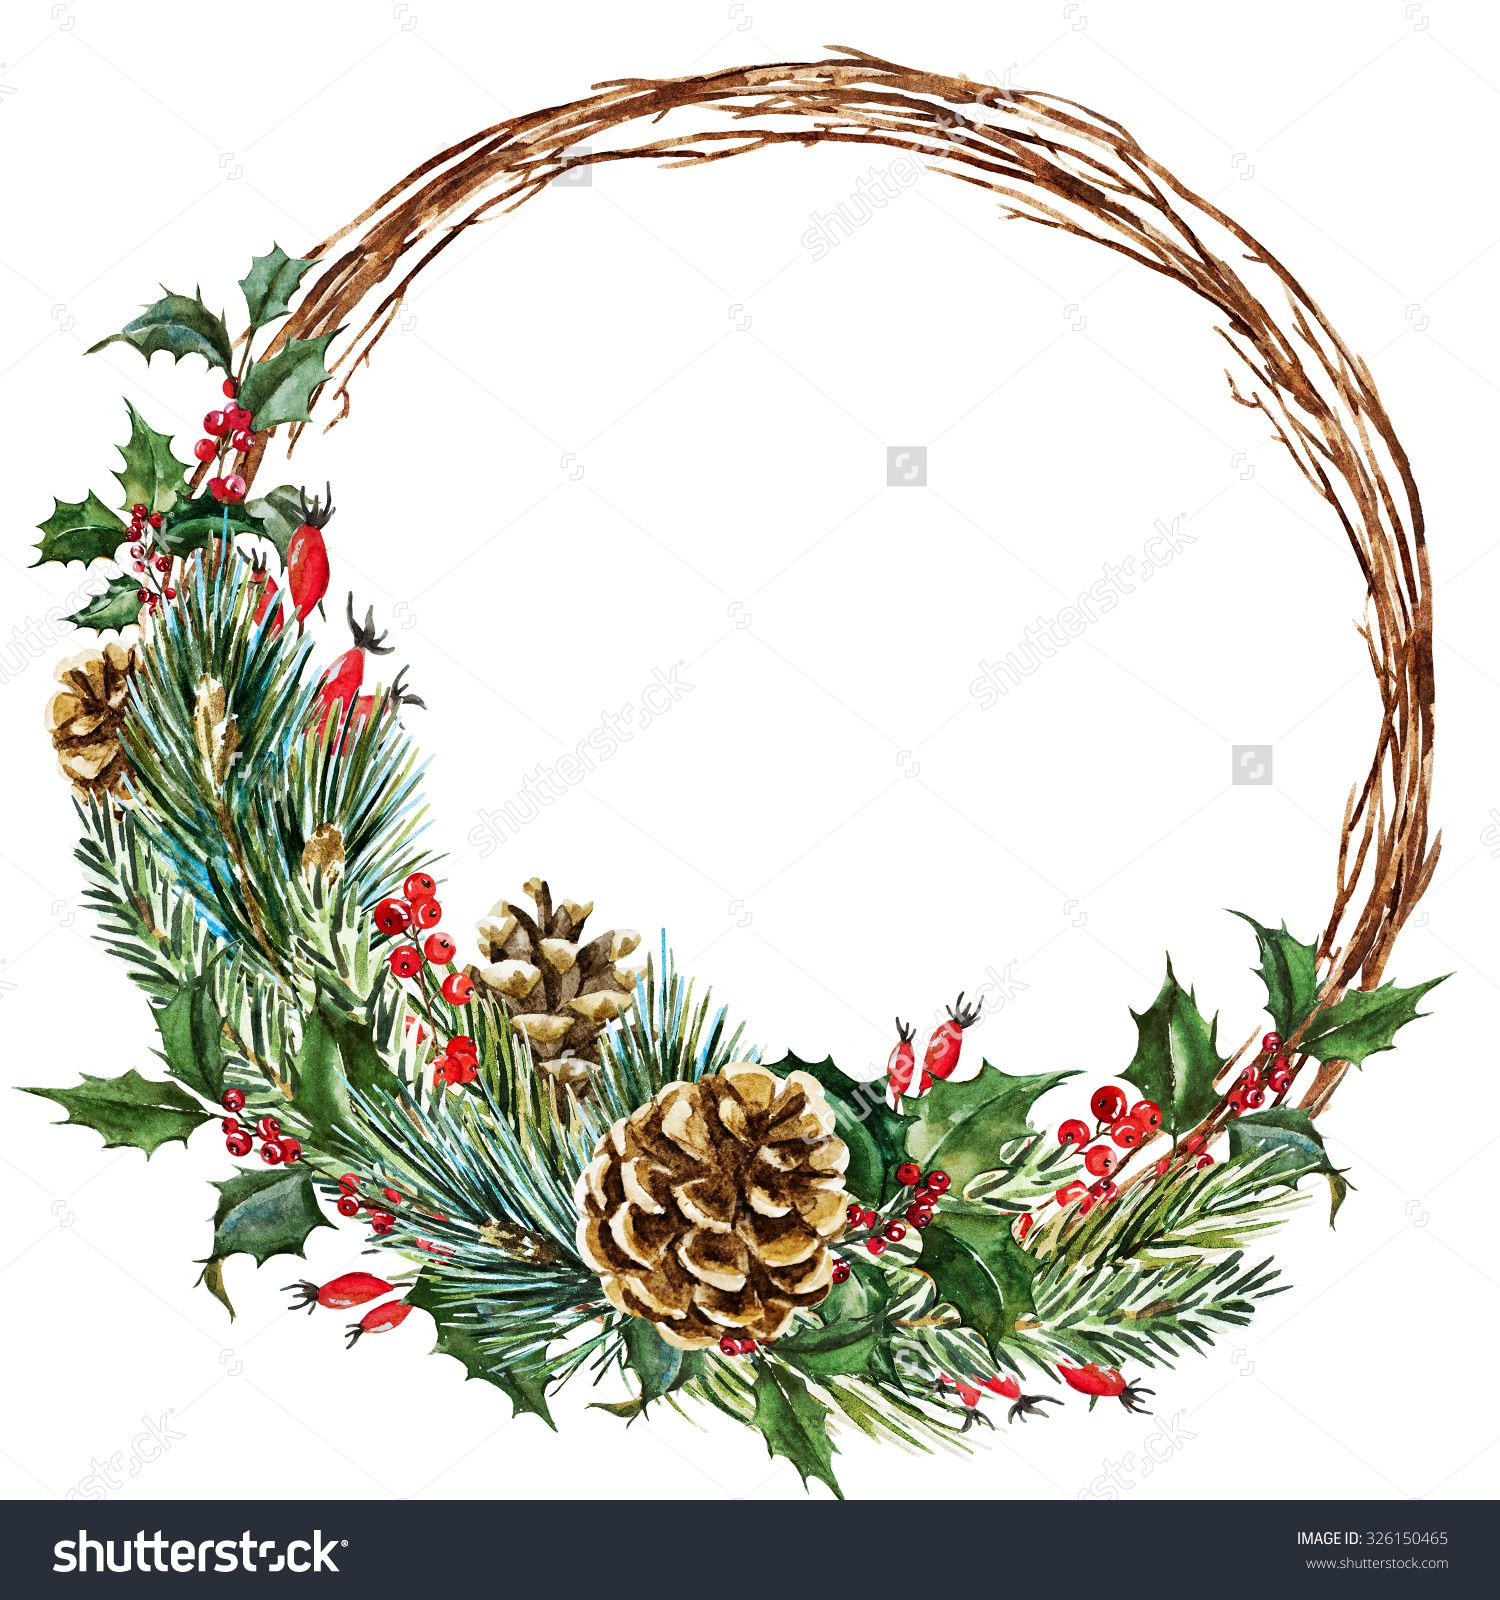 Christmas Garland Drawing.Watercolor Drawing Isolated Christmas Wreath With Fir Pine